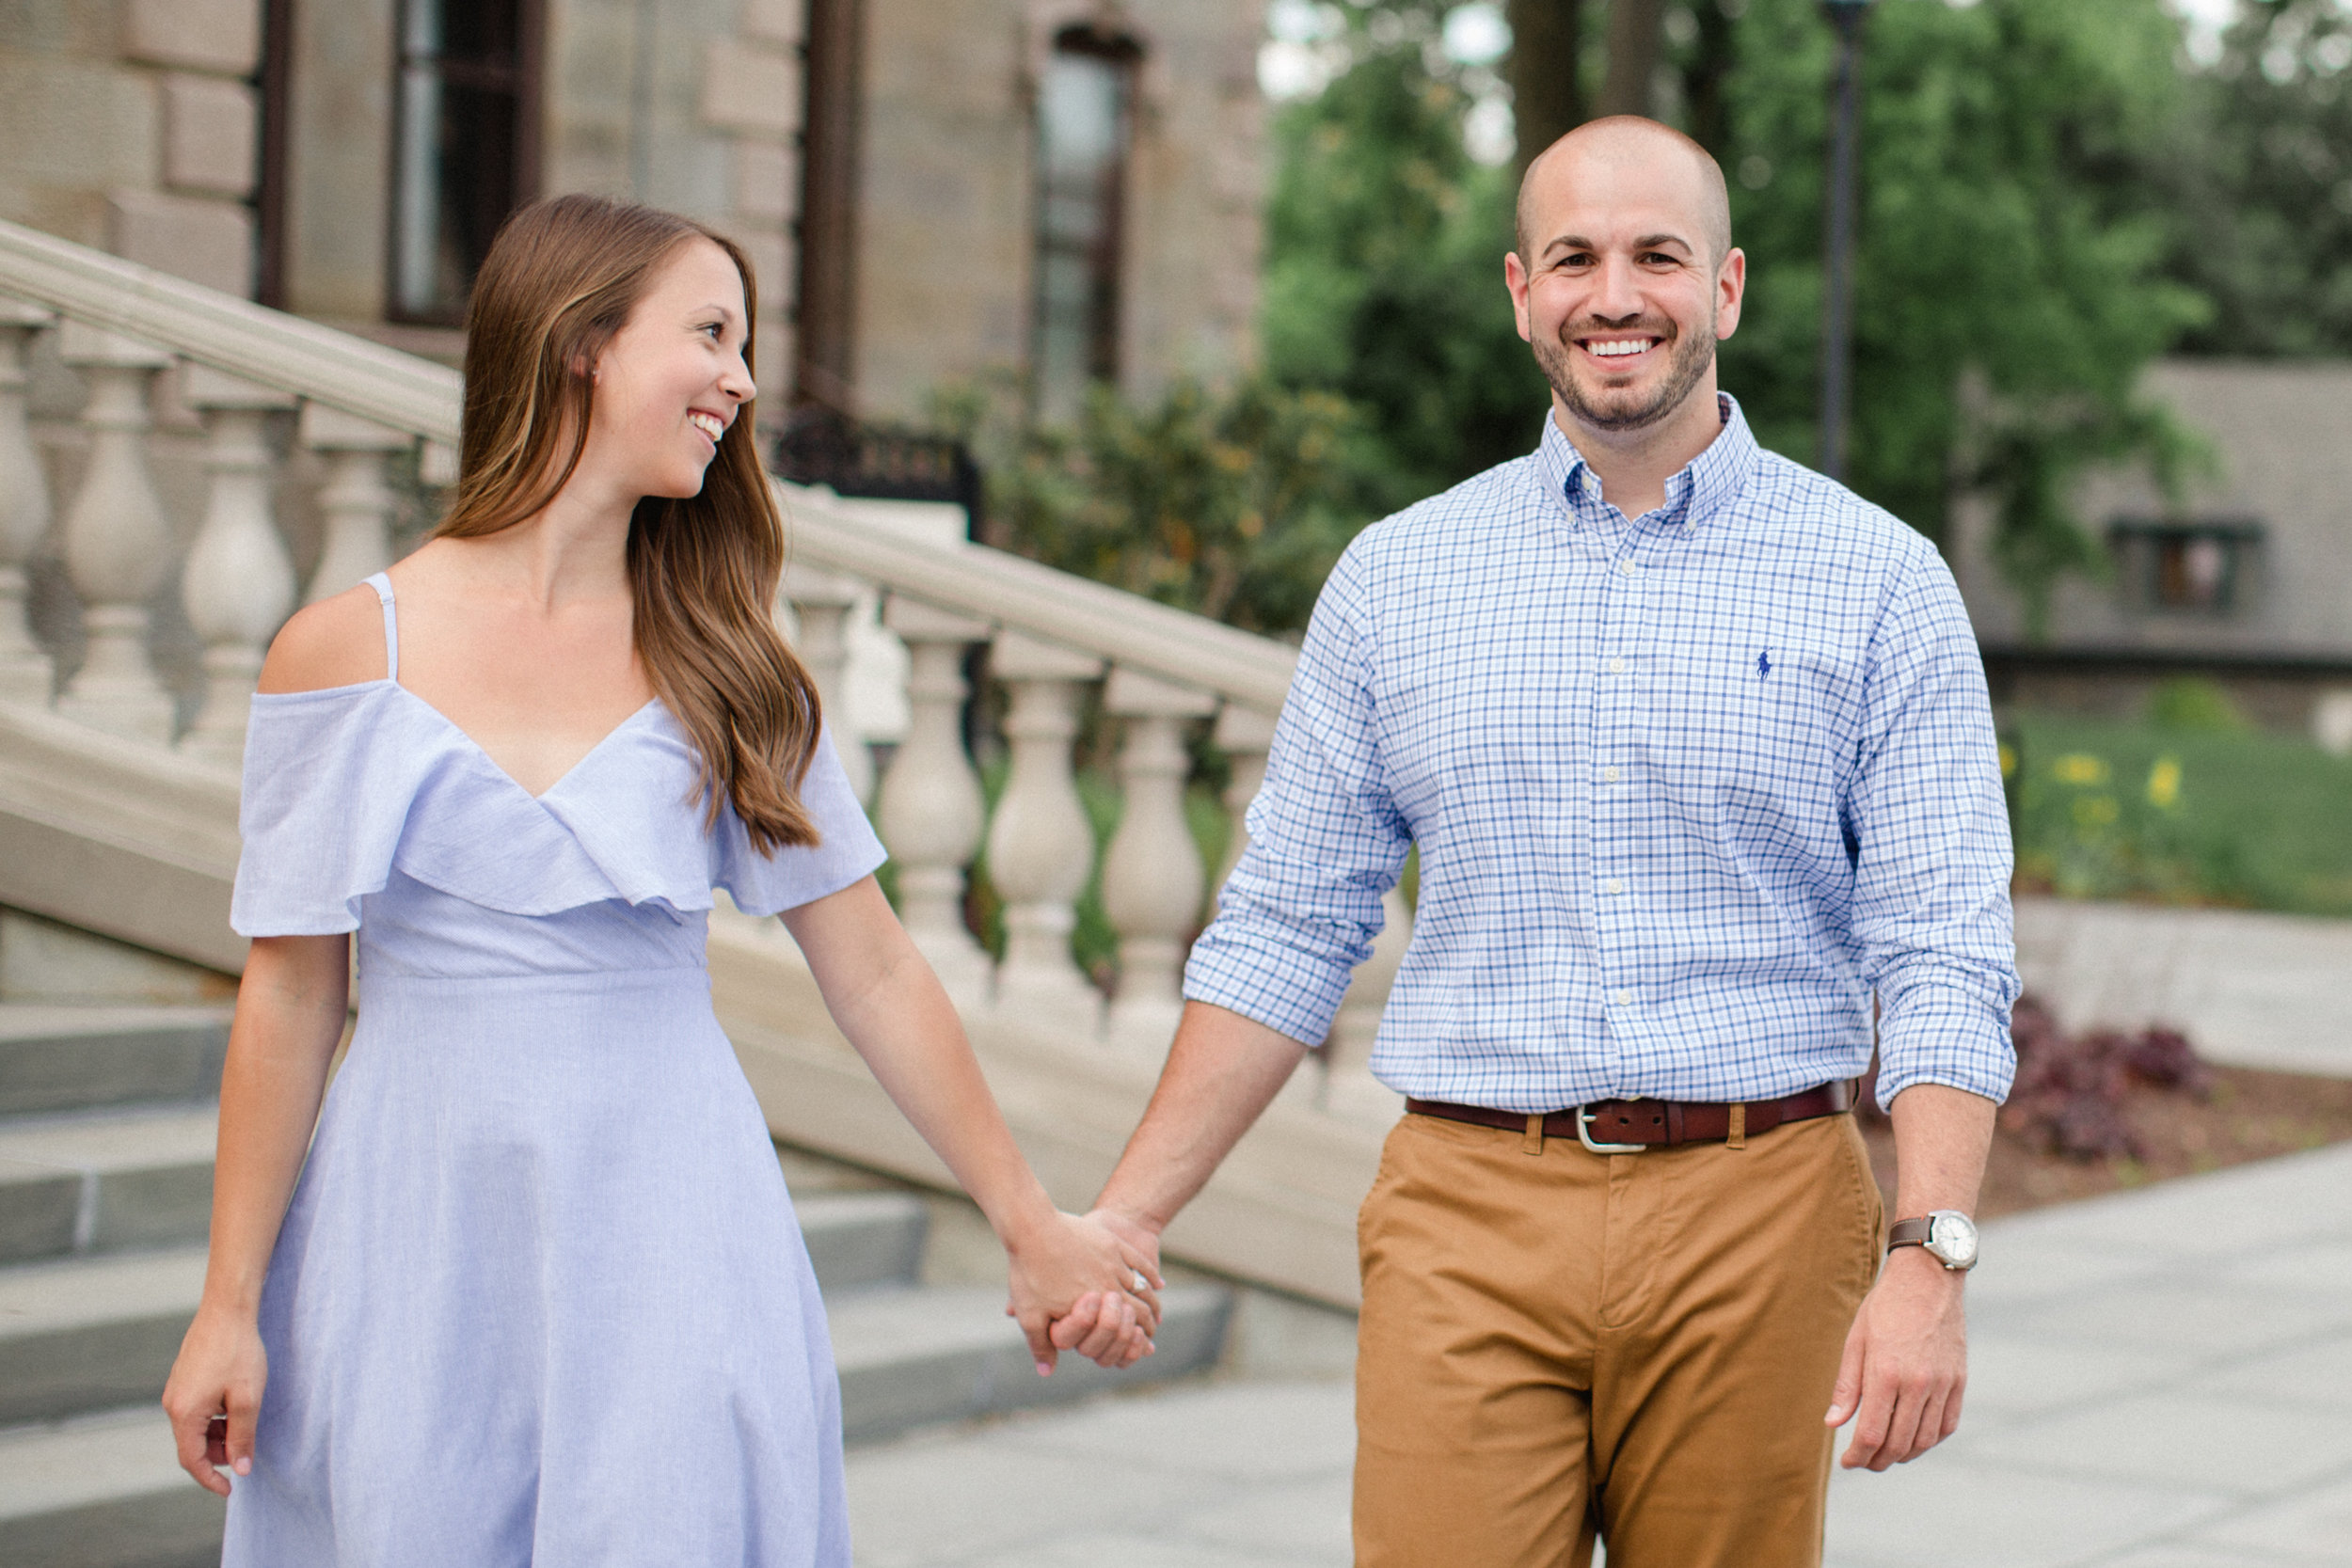 University of Scranton Engagement Session Photos_JDP-15.jpg